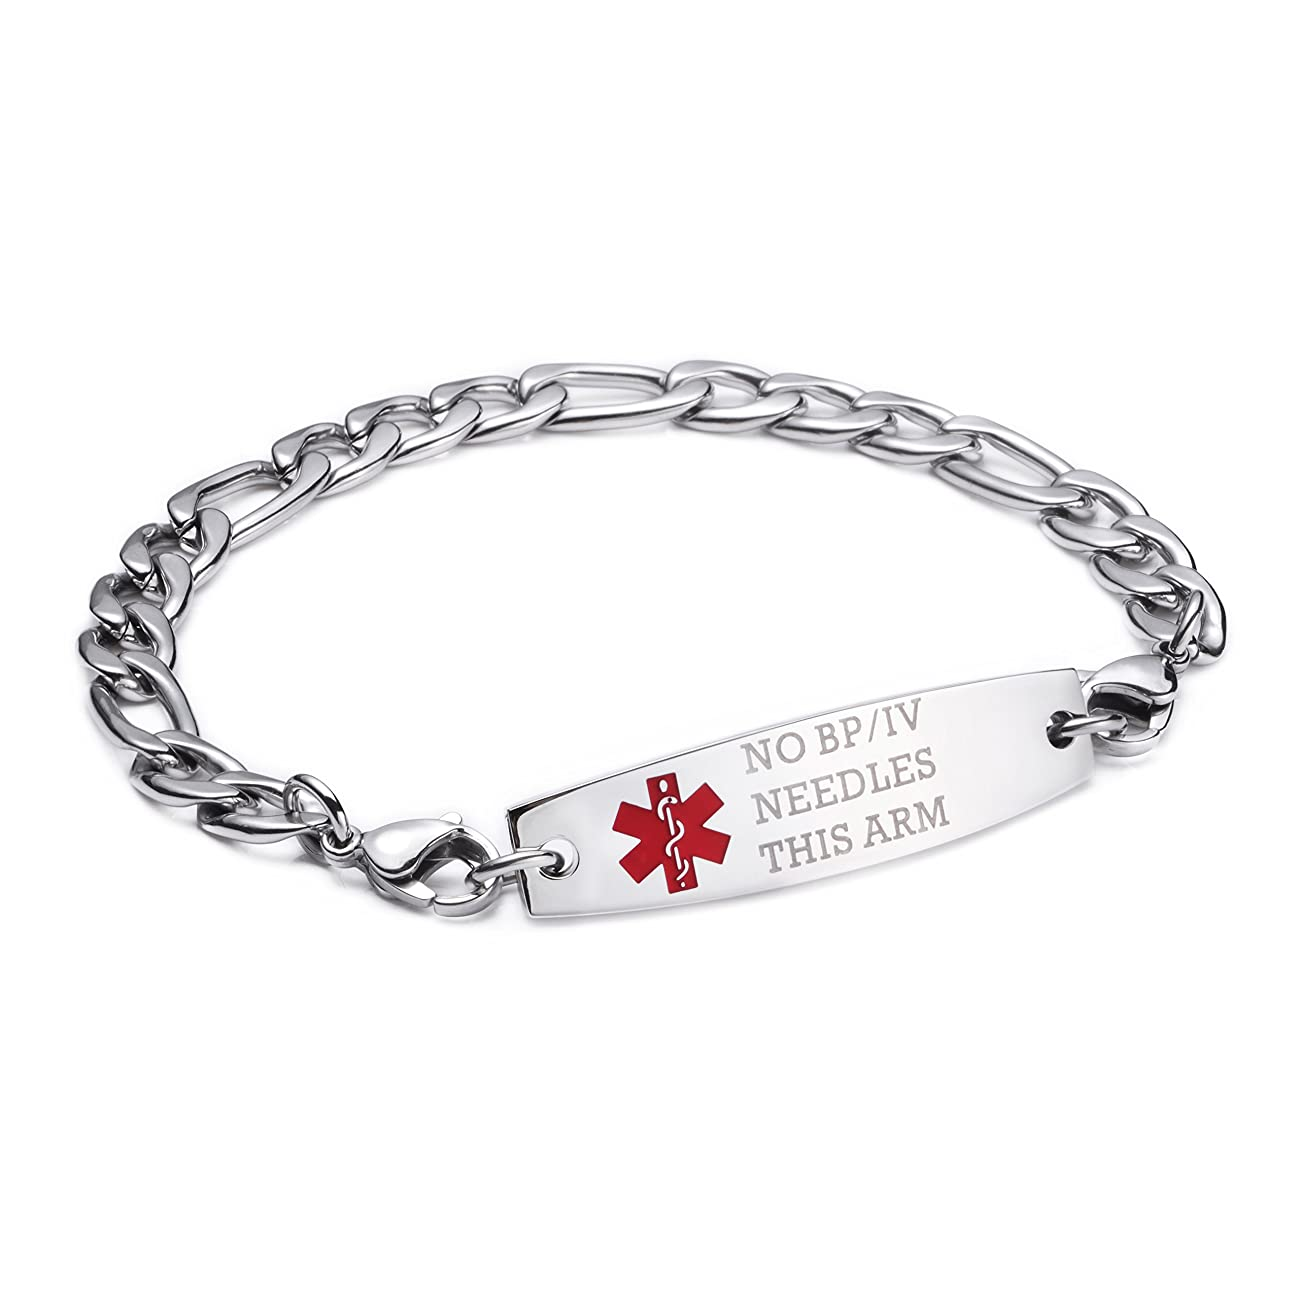 linnalove-Stainless Steel Figaro Chain Interchangeable Medical Alert Bracelets